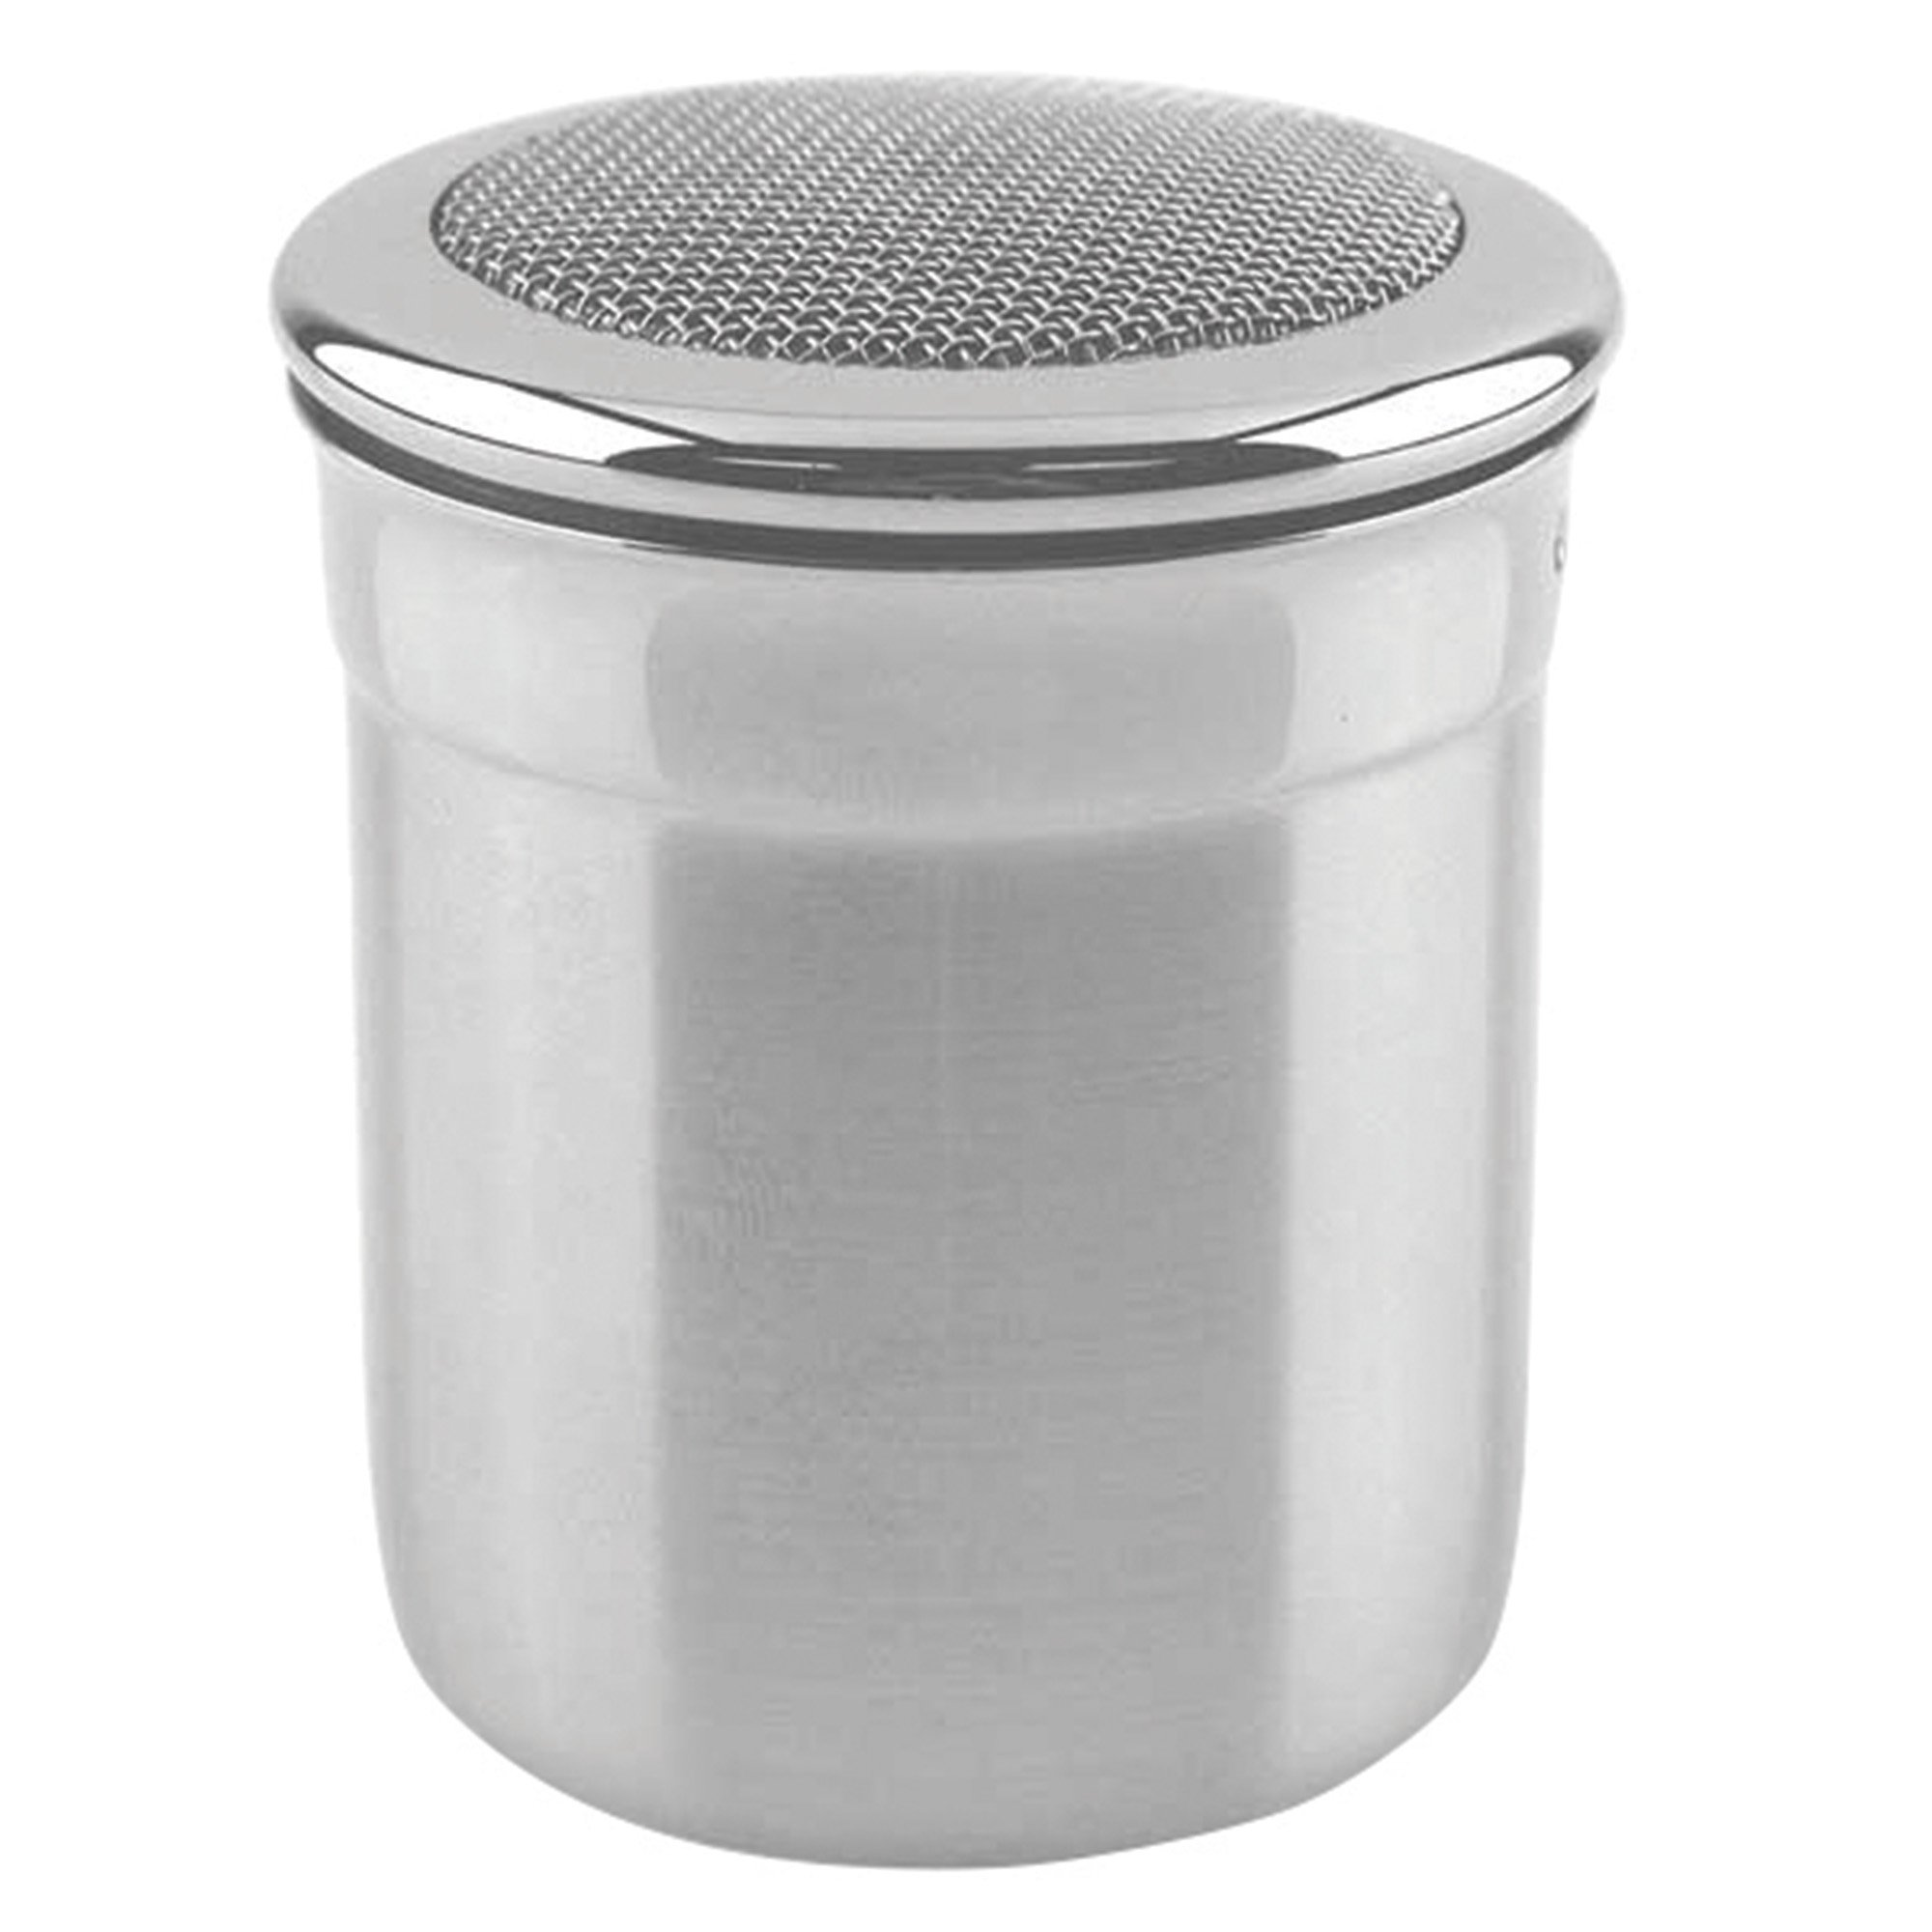 Fox Run 1031 Mesh Top Shaker, Stainless Steel, 2.5-Inch